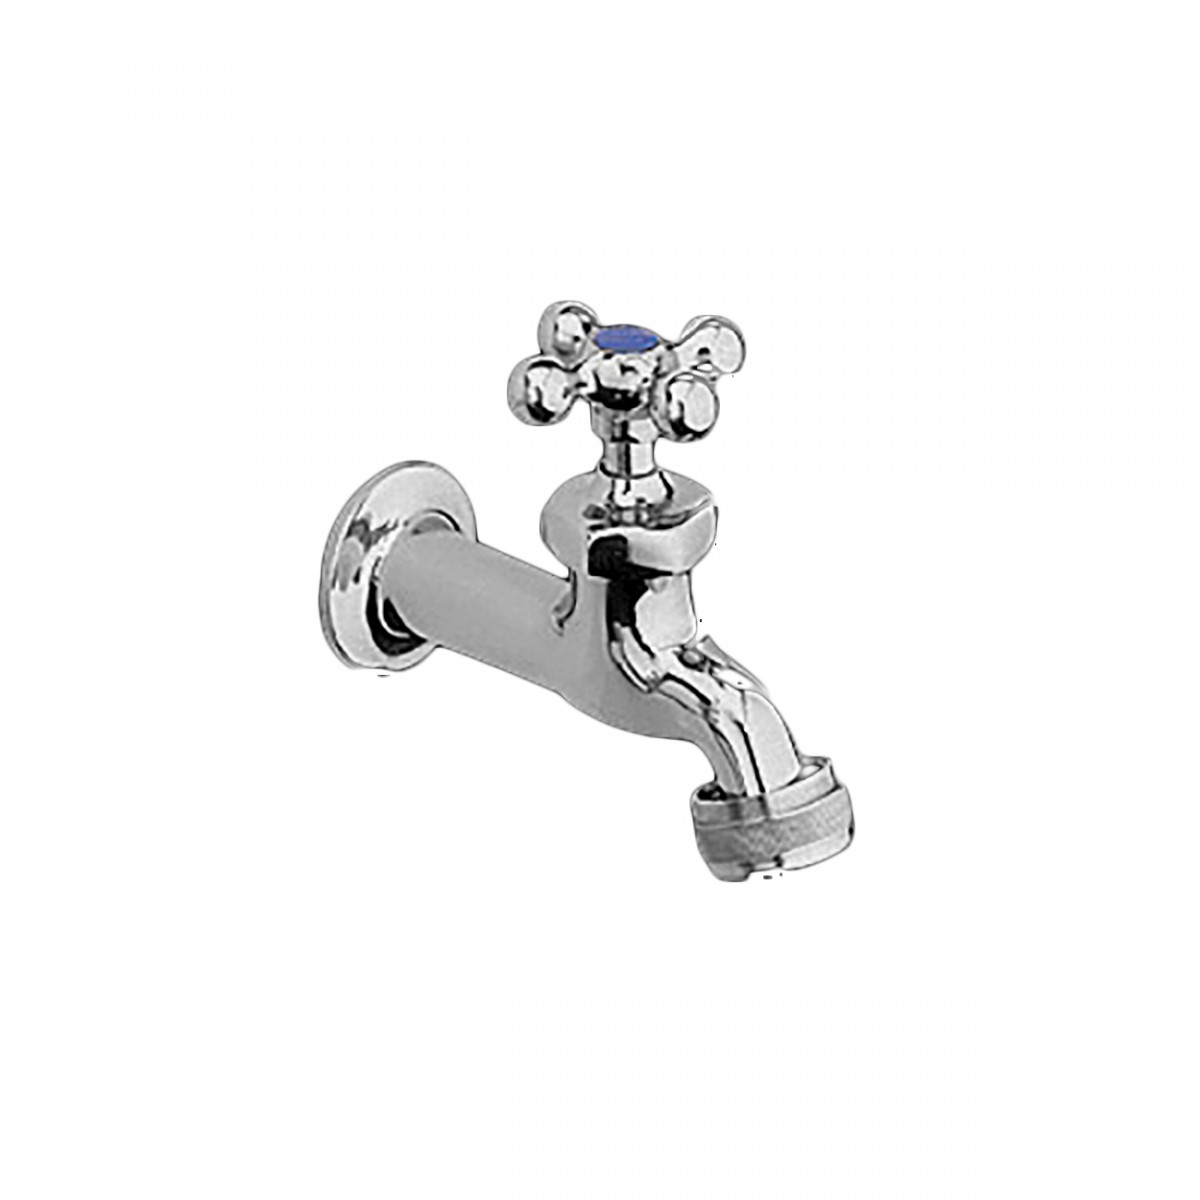 List of Synonyms and Antonyms of the Word: outdoor faucet